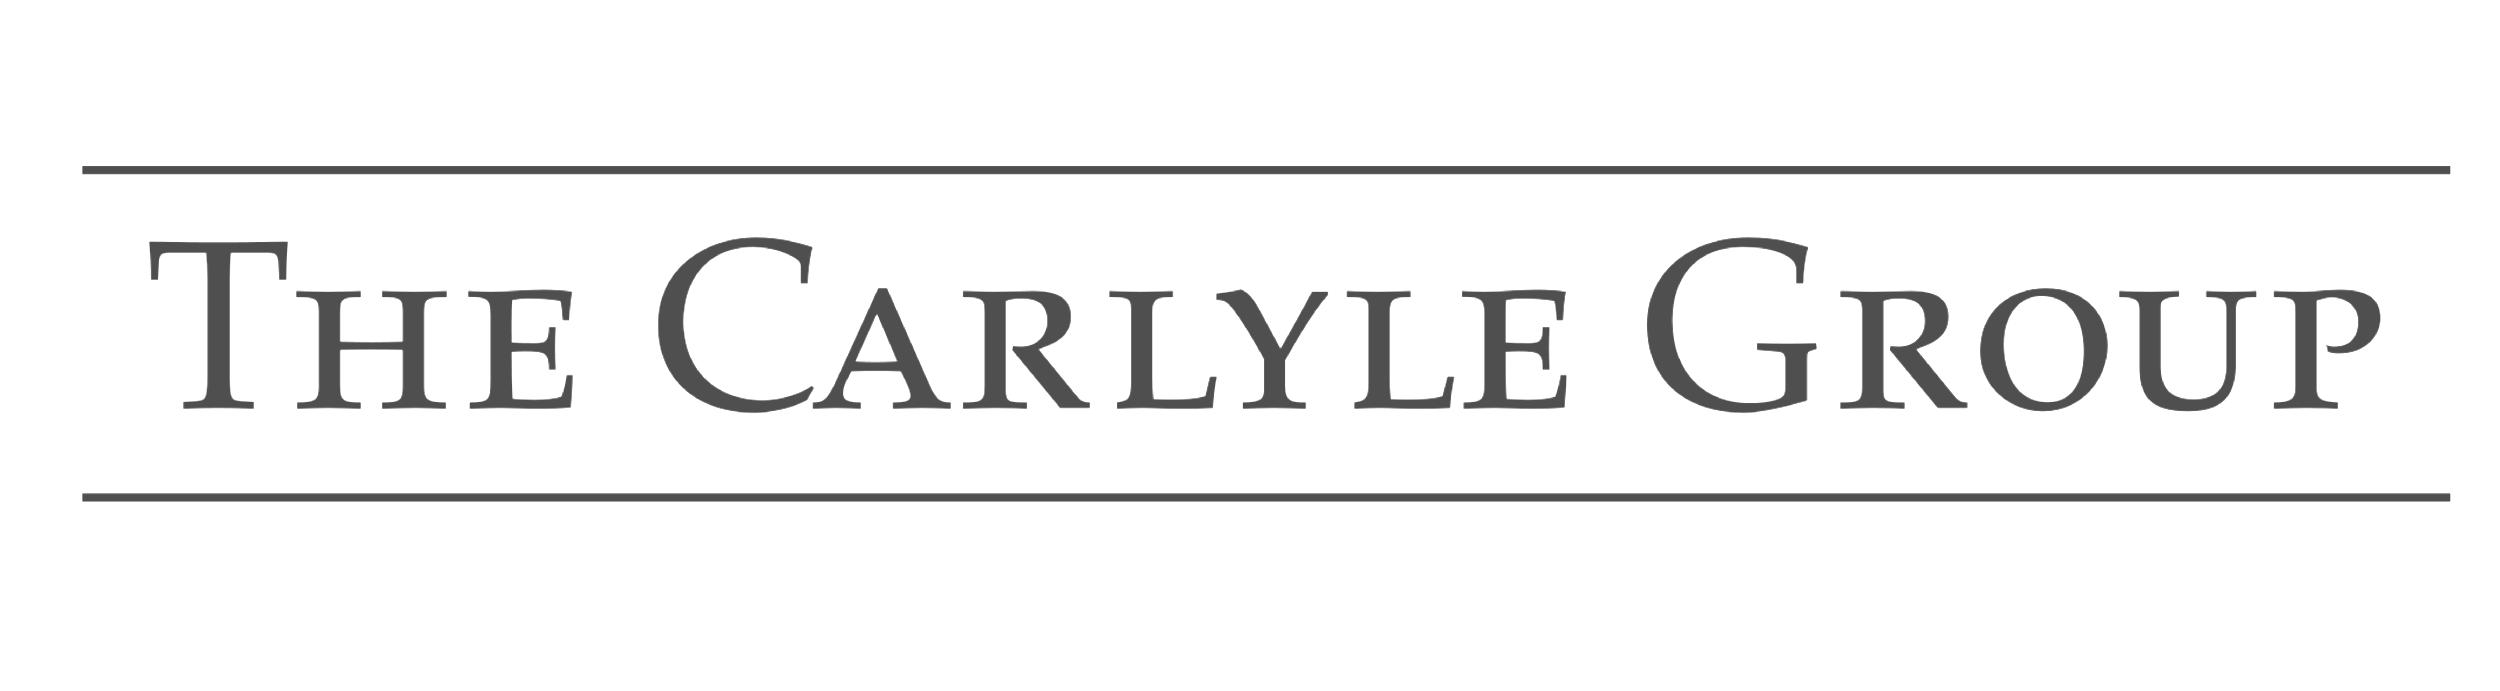 the carlyle group-01.png